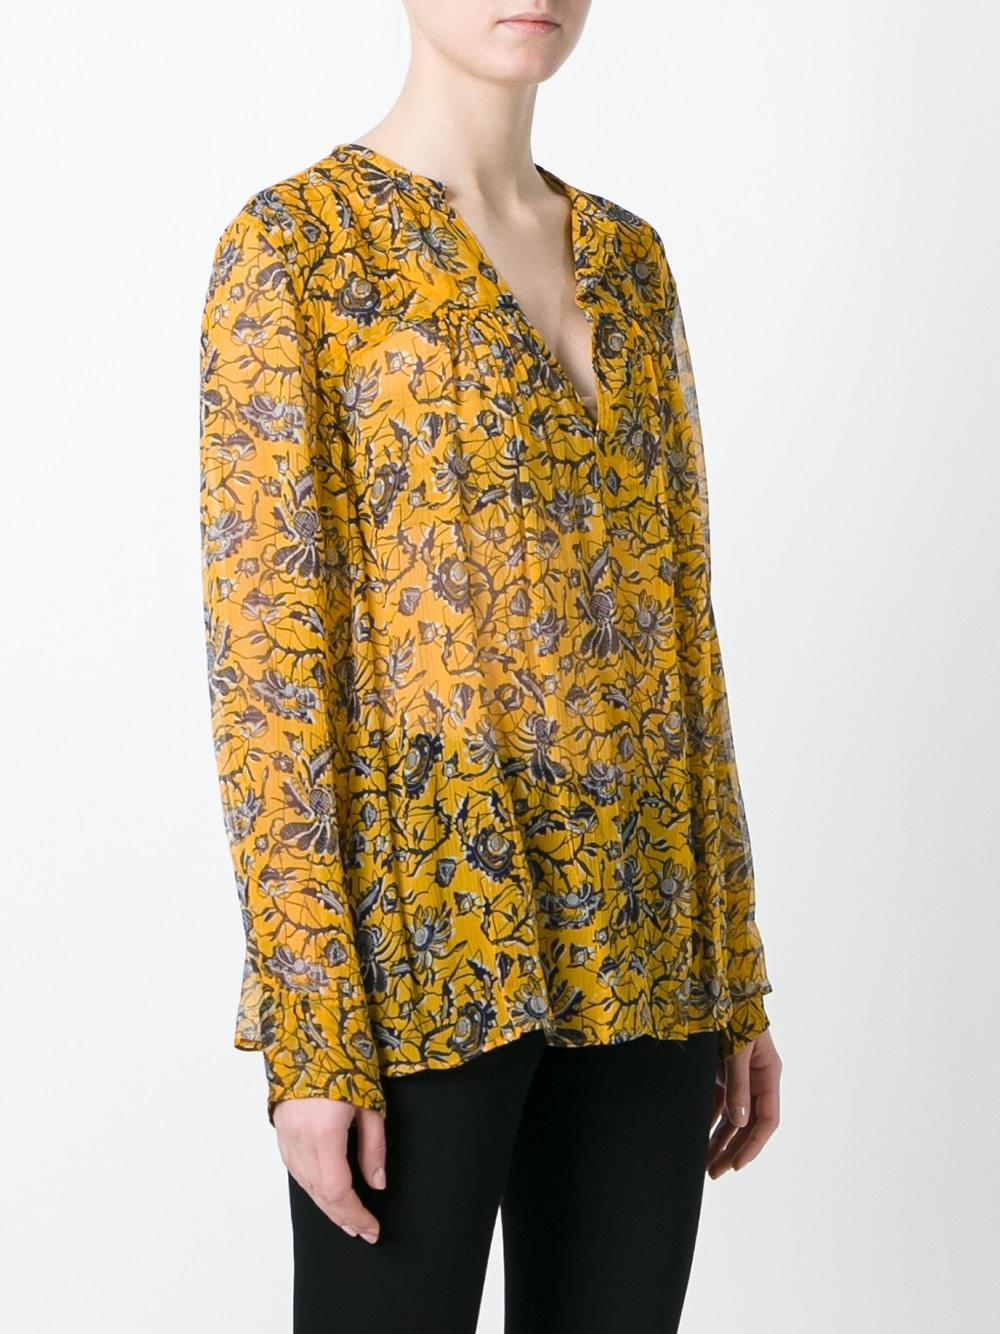 Lyst toile isabel marant 39 boden 39 blouse in yellow for Boden yellow